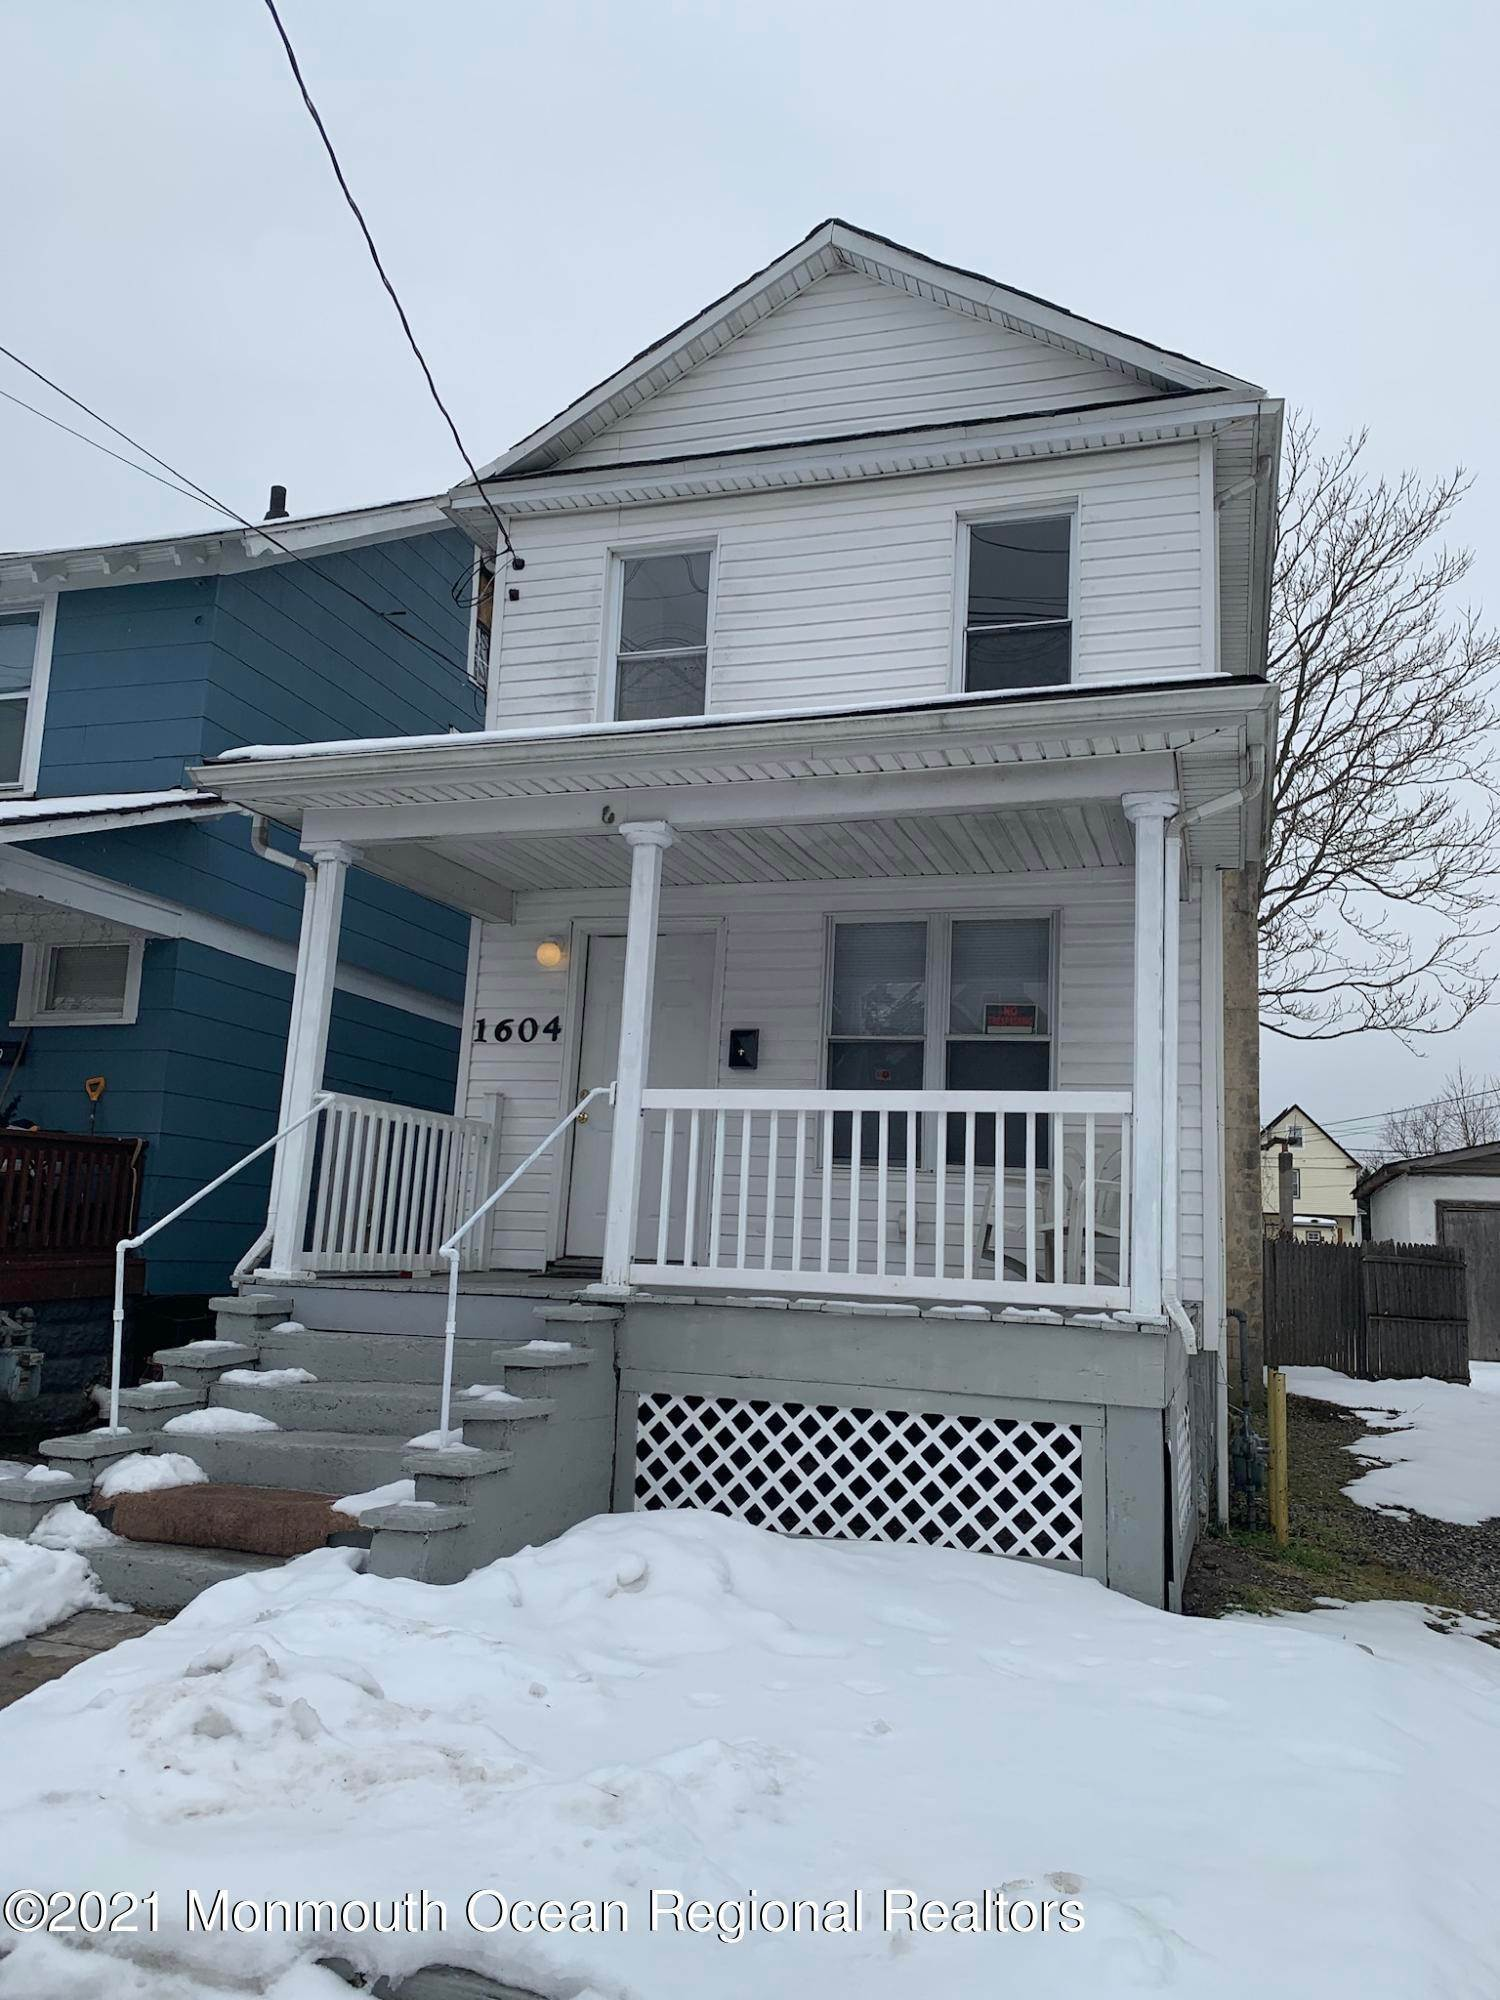 Property for Sale at 1604 Sewall Avenue Asbury Park, New Jersey 07712 United States